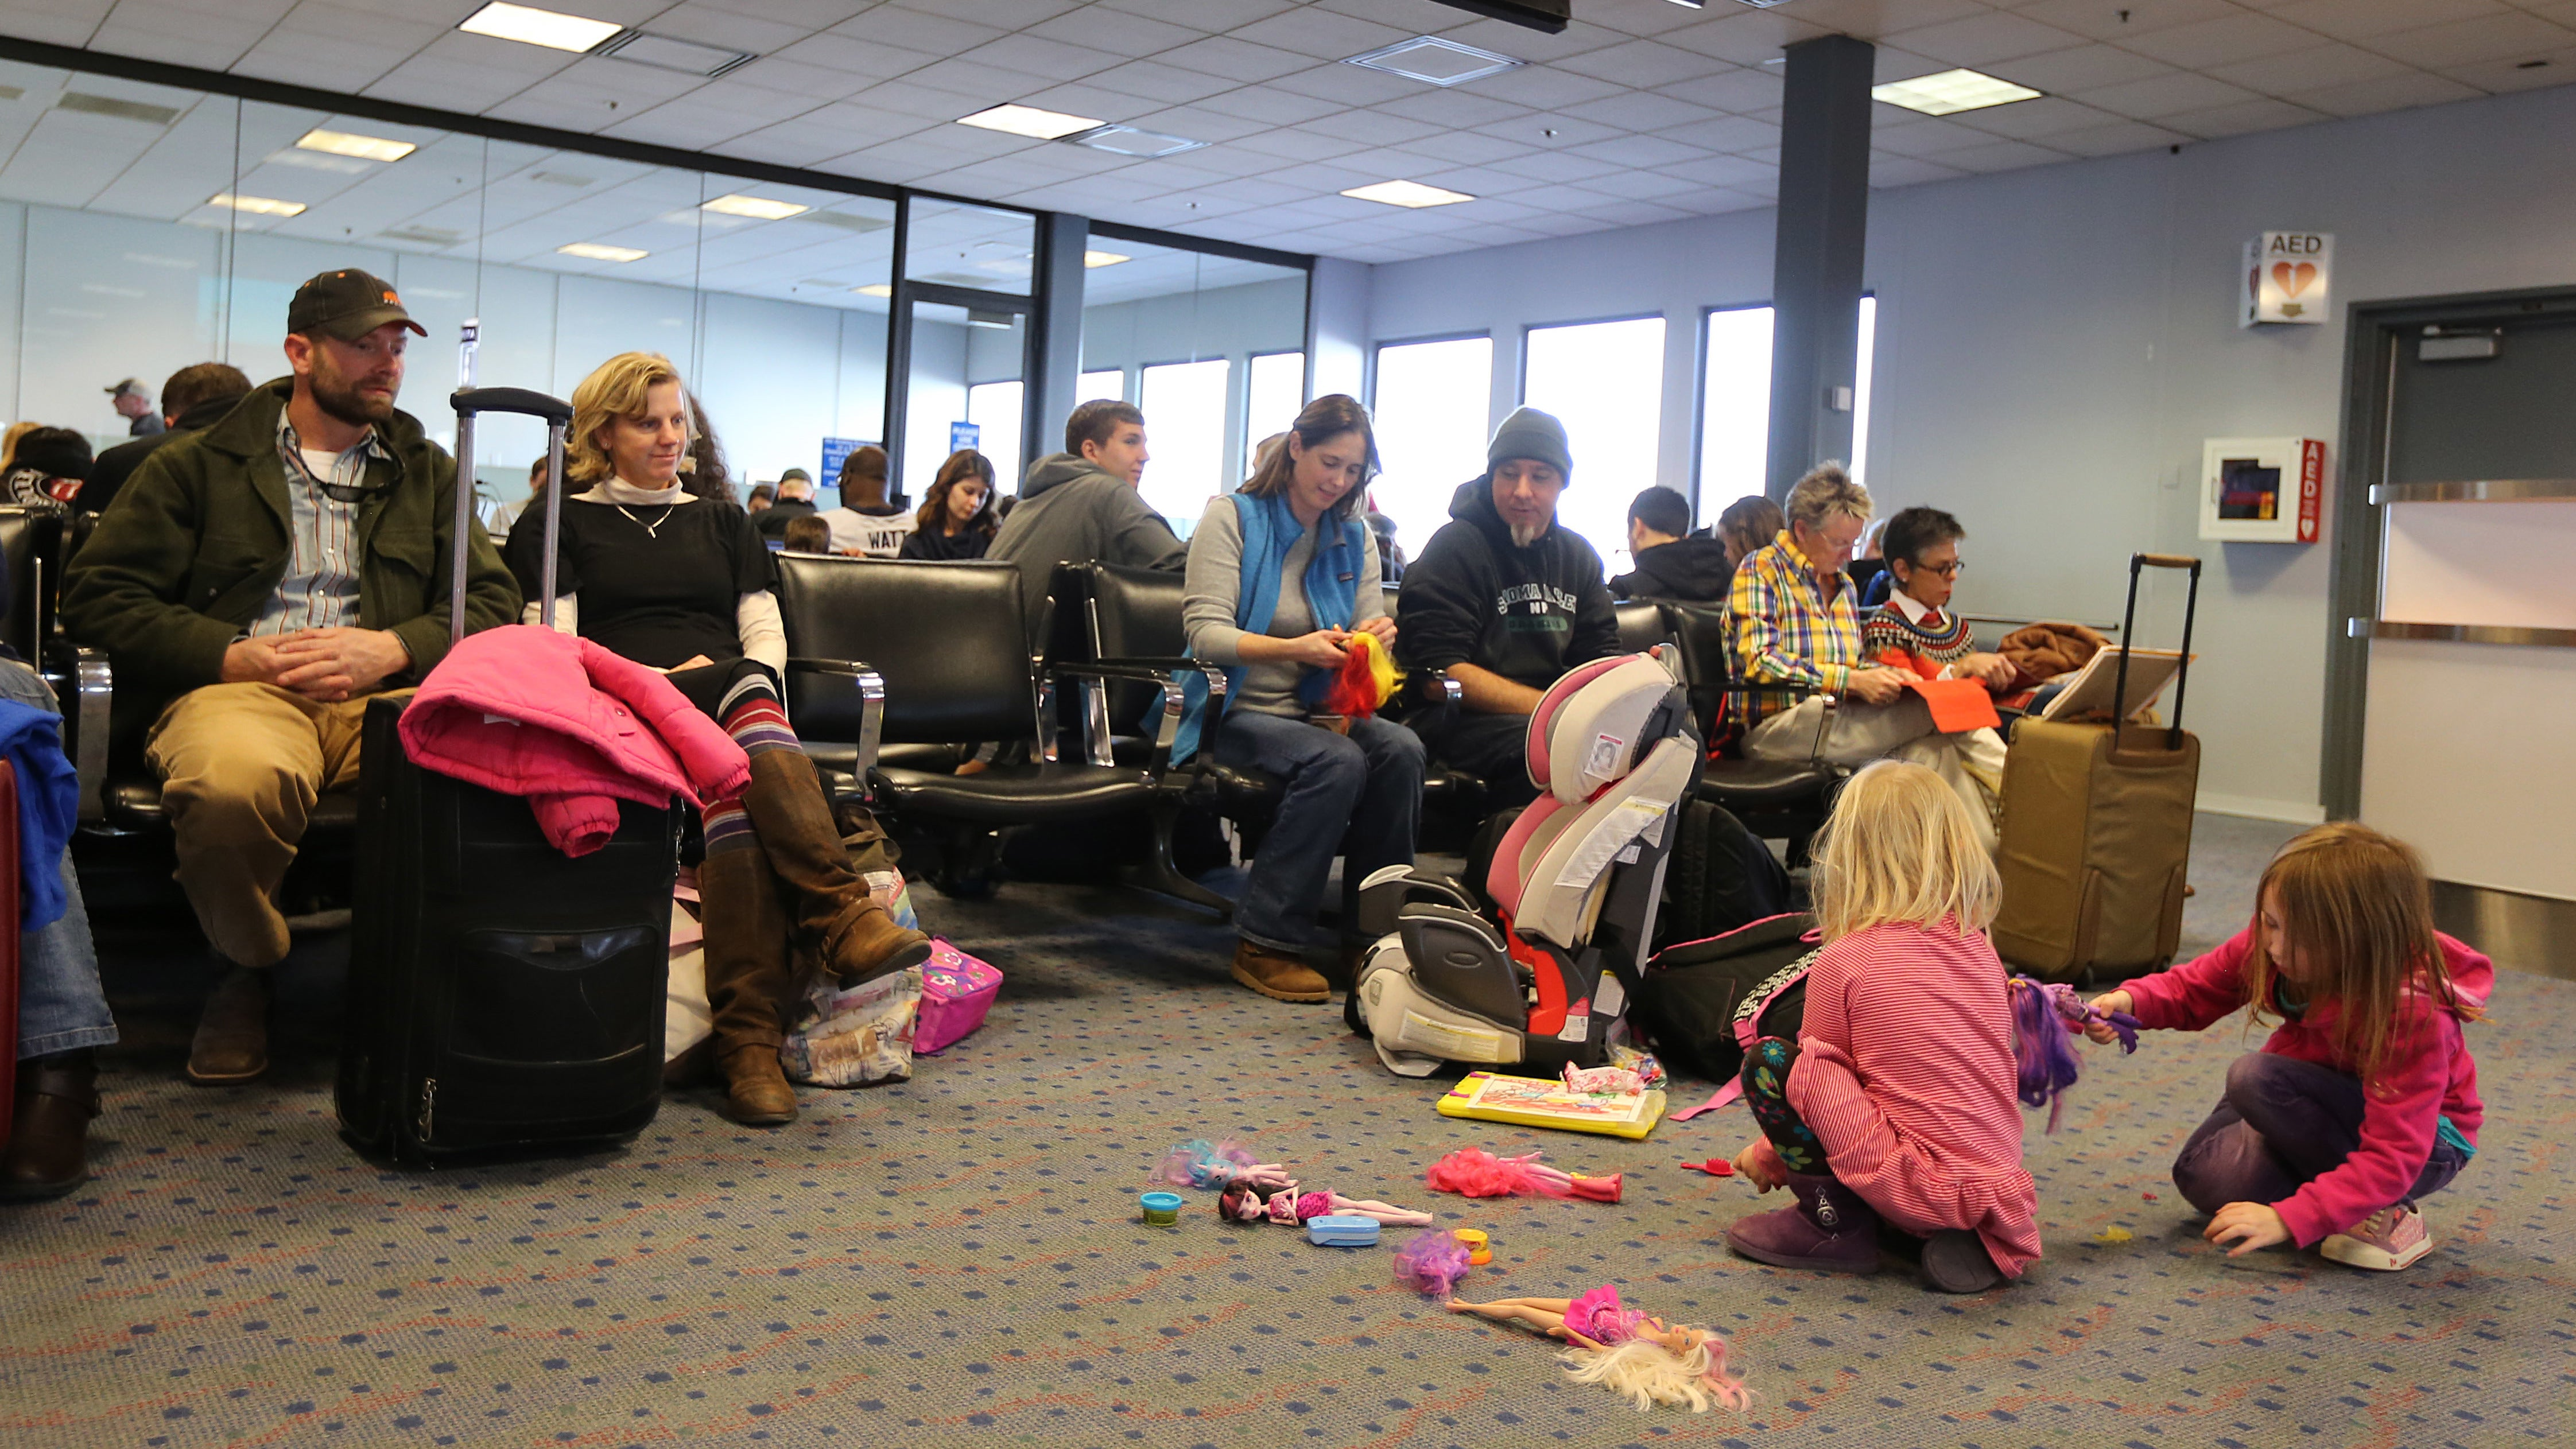 9 Ways To Keep Kids Entertained During A Long Airport Delay (Without Electronics)